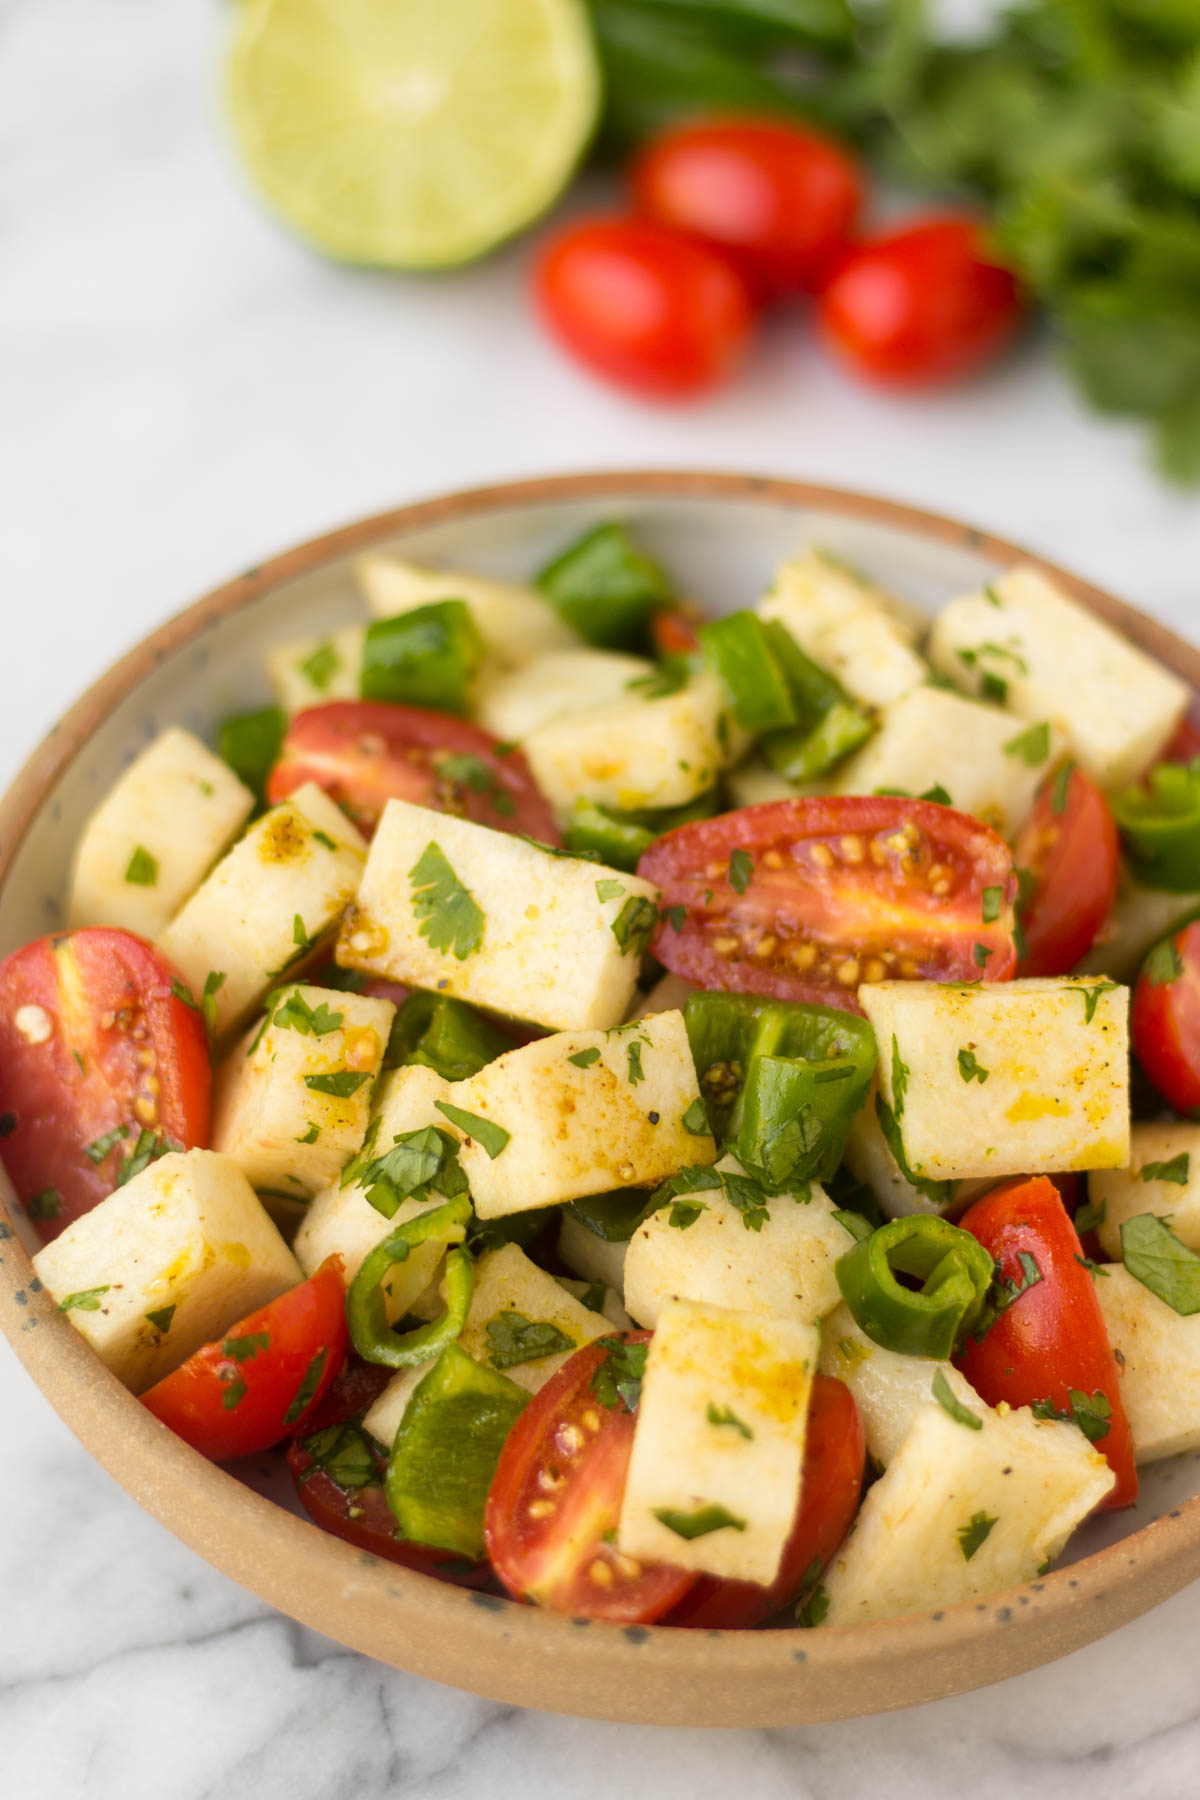 tomato jicama salad + 6 more farmer's market recipes | healthy recipes, farmer's market produce, fresh recipes, summer food |